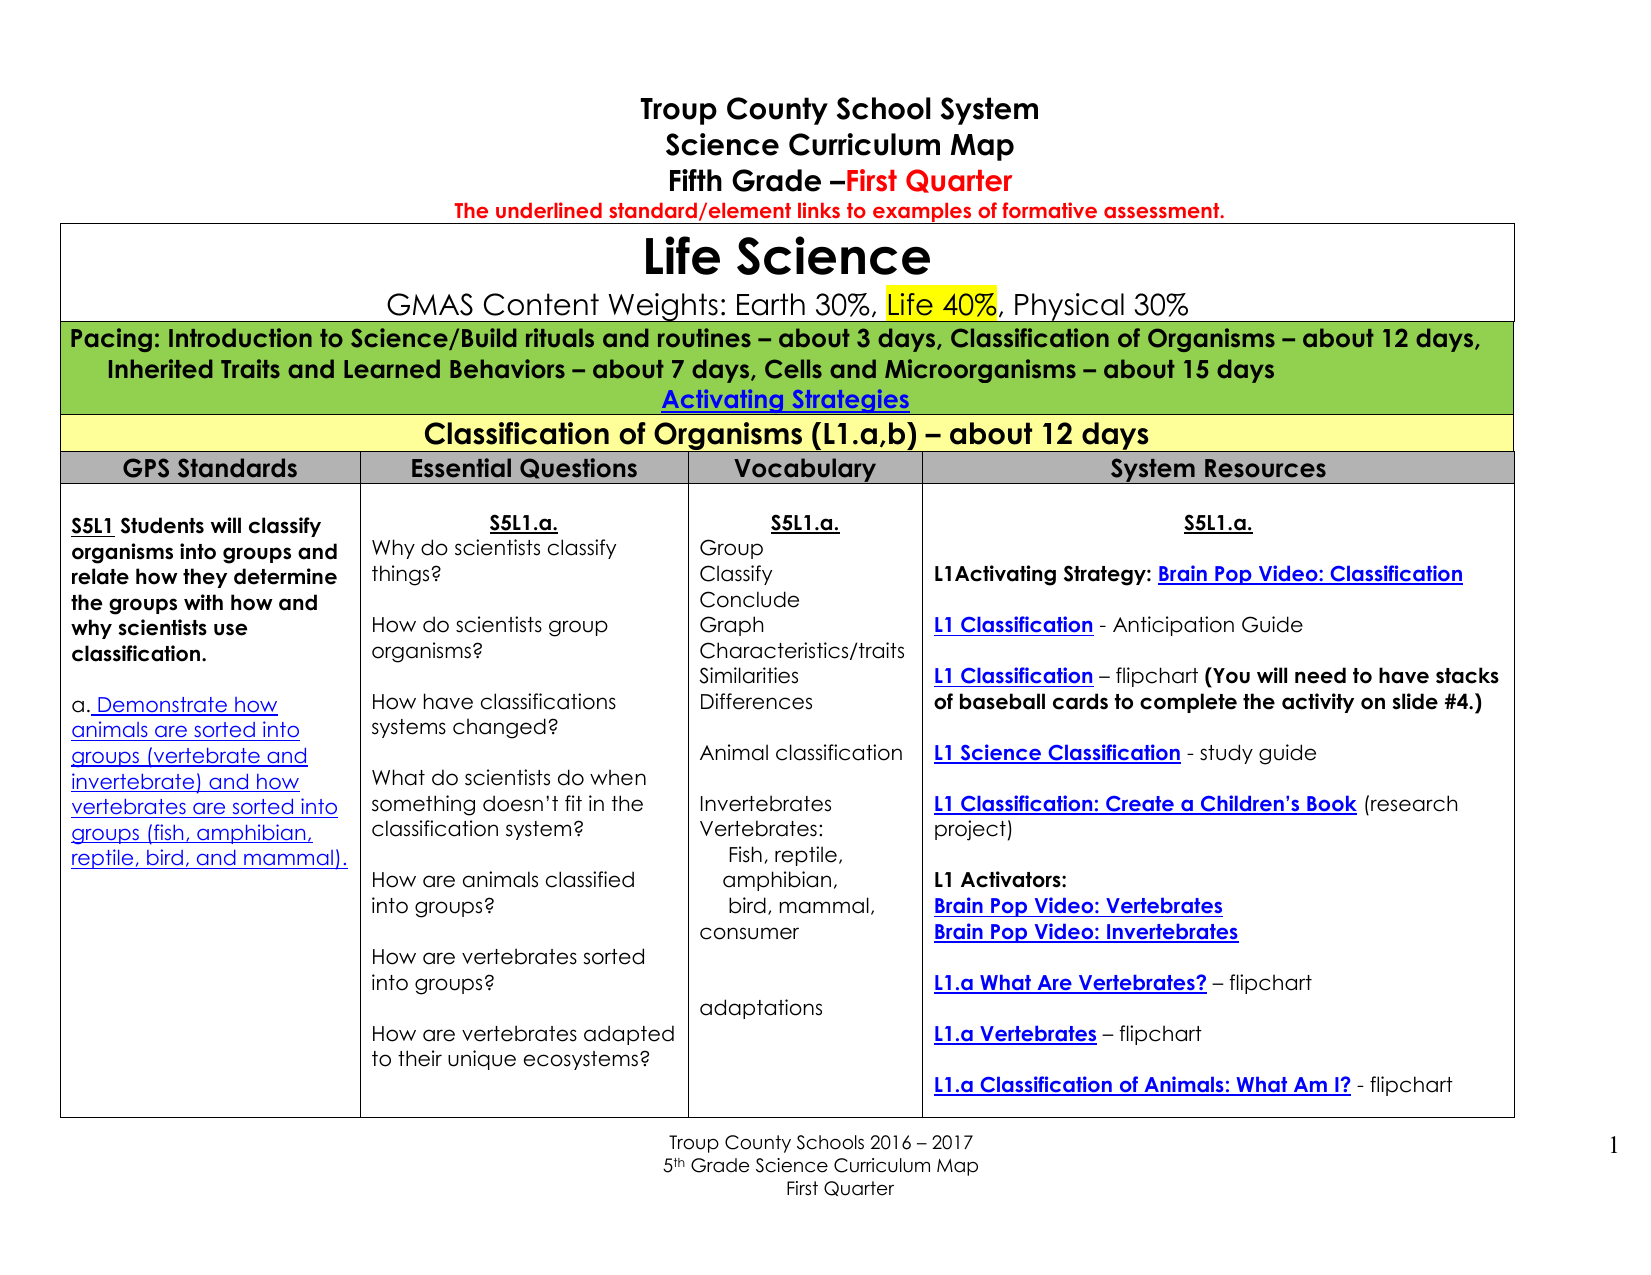 Curriculum Map - Troup County Schools